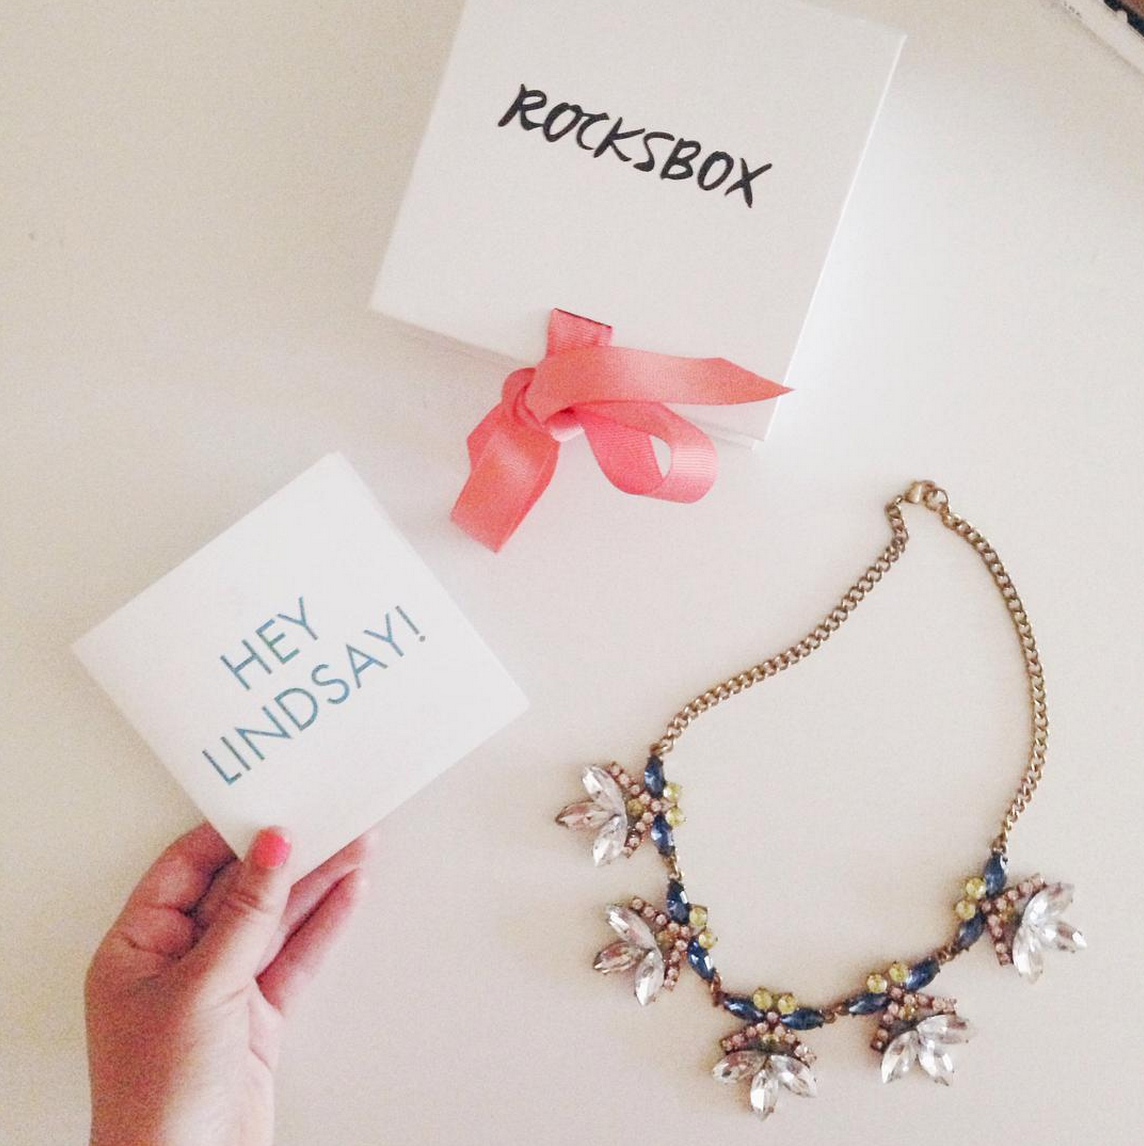 What We Love: Rocksbox